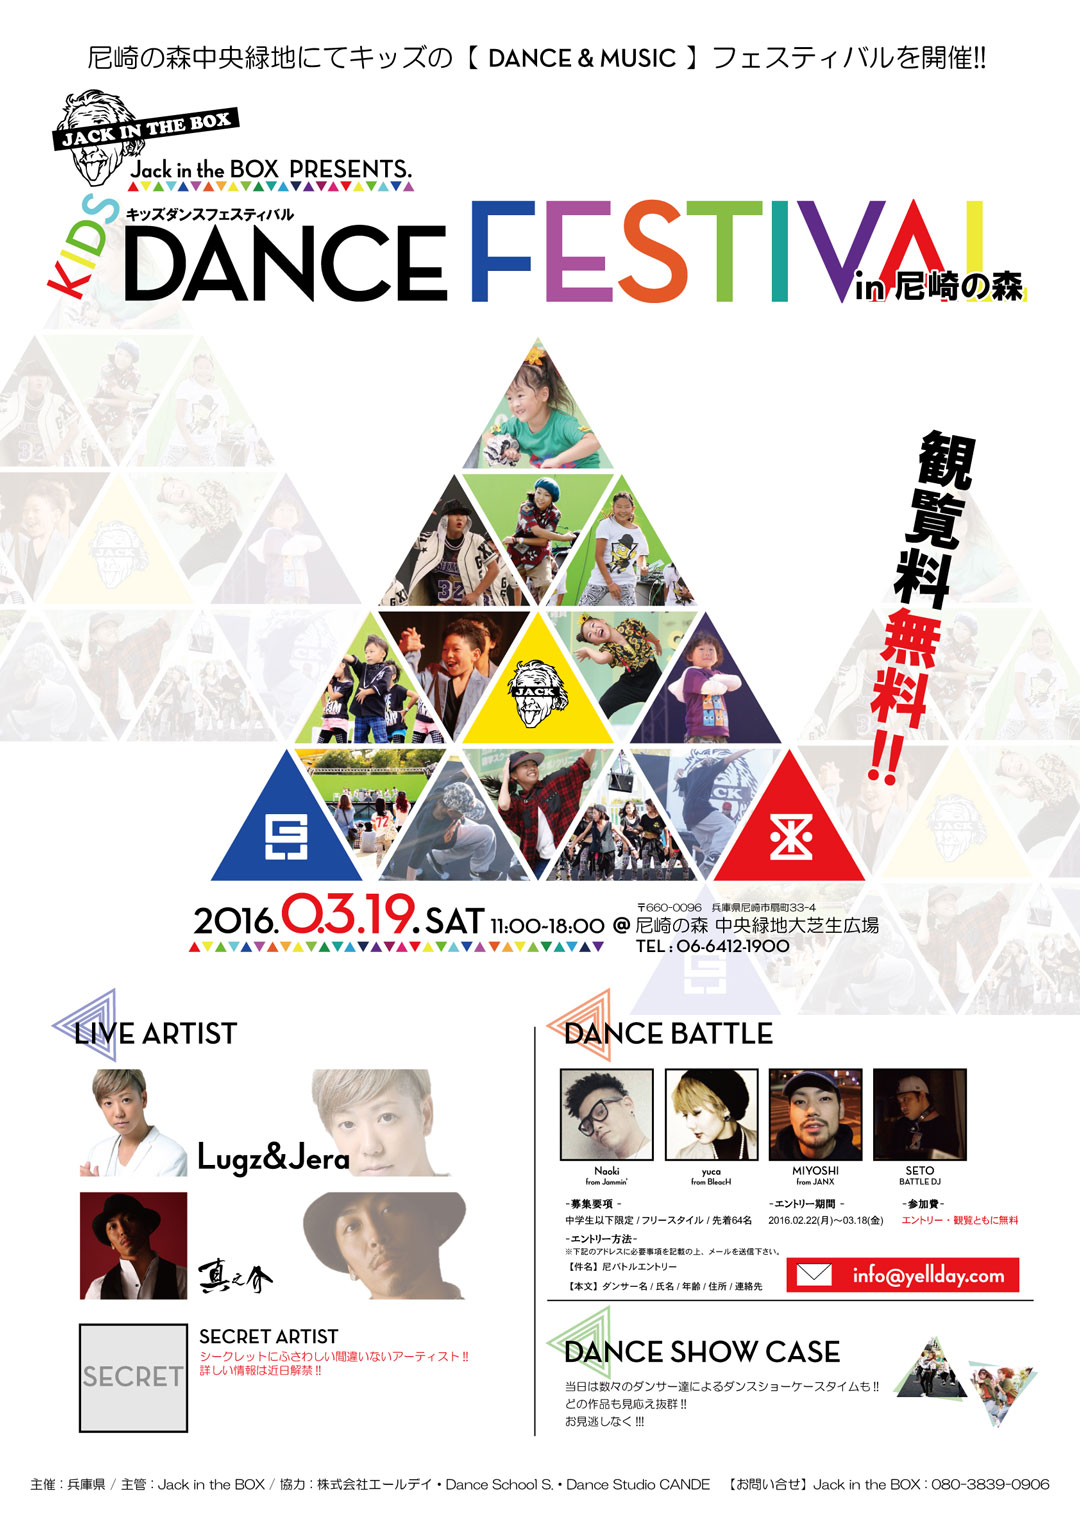 Jack in the BOX PRESENTS DANCE FESTIVAL